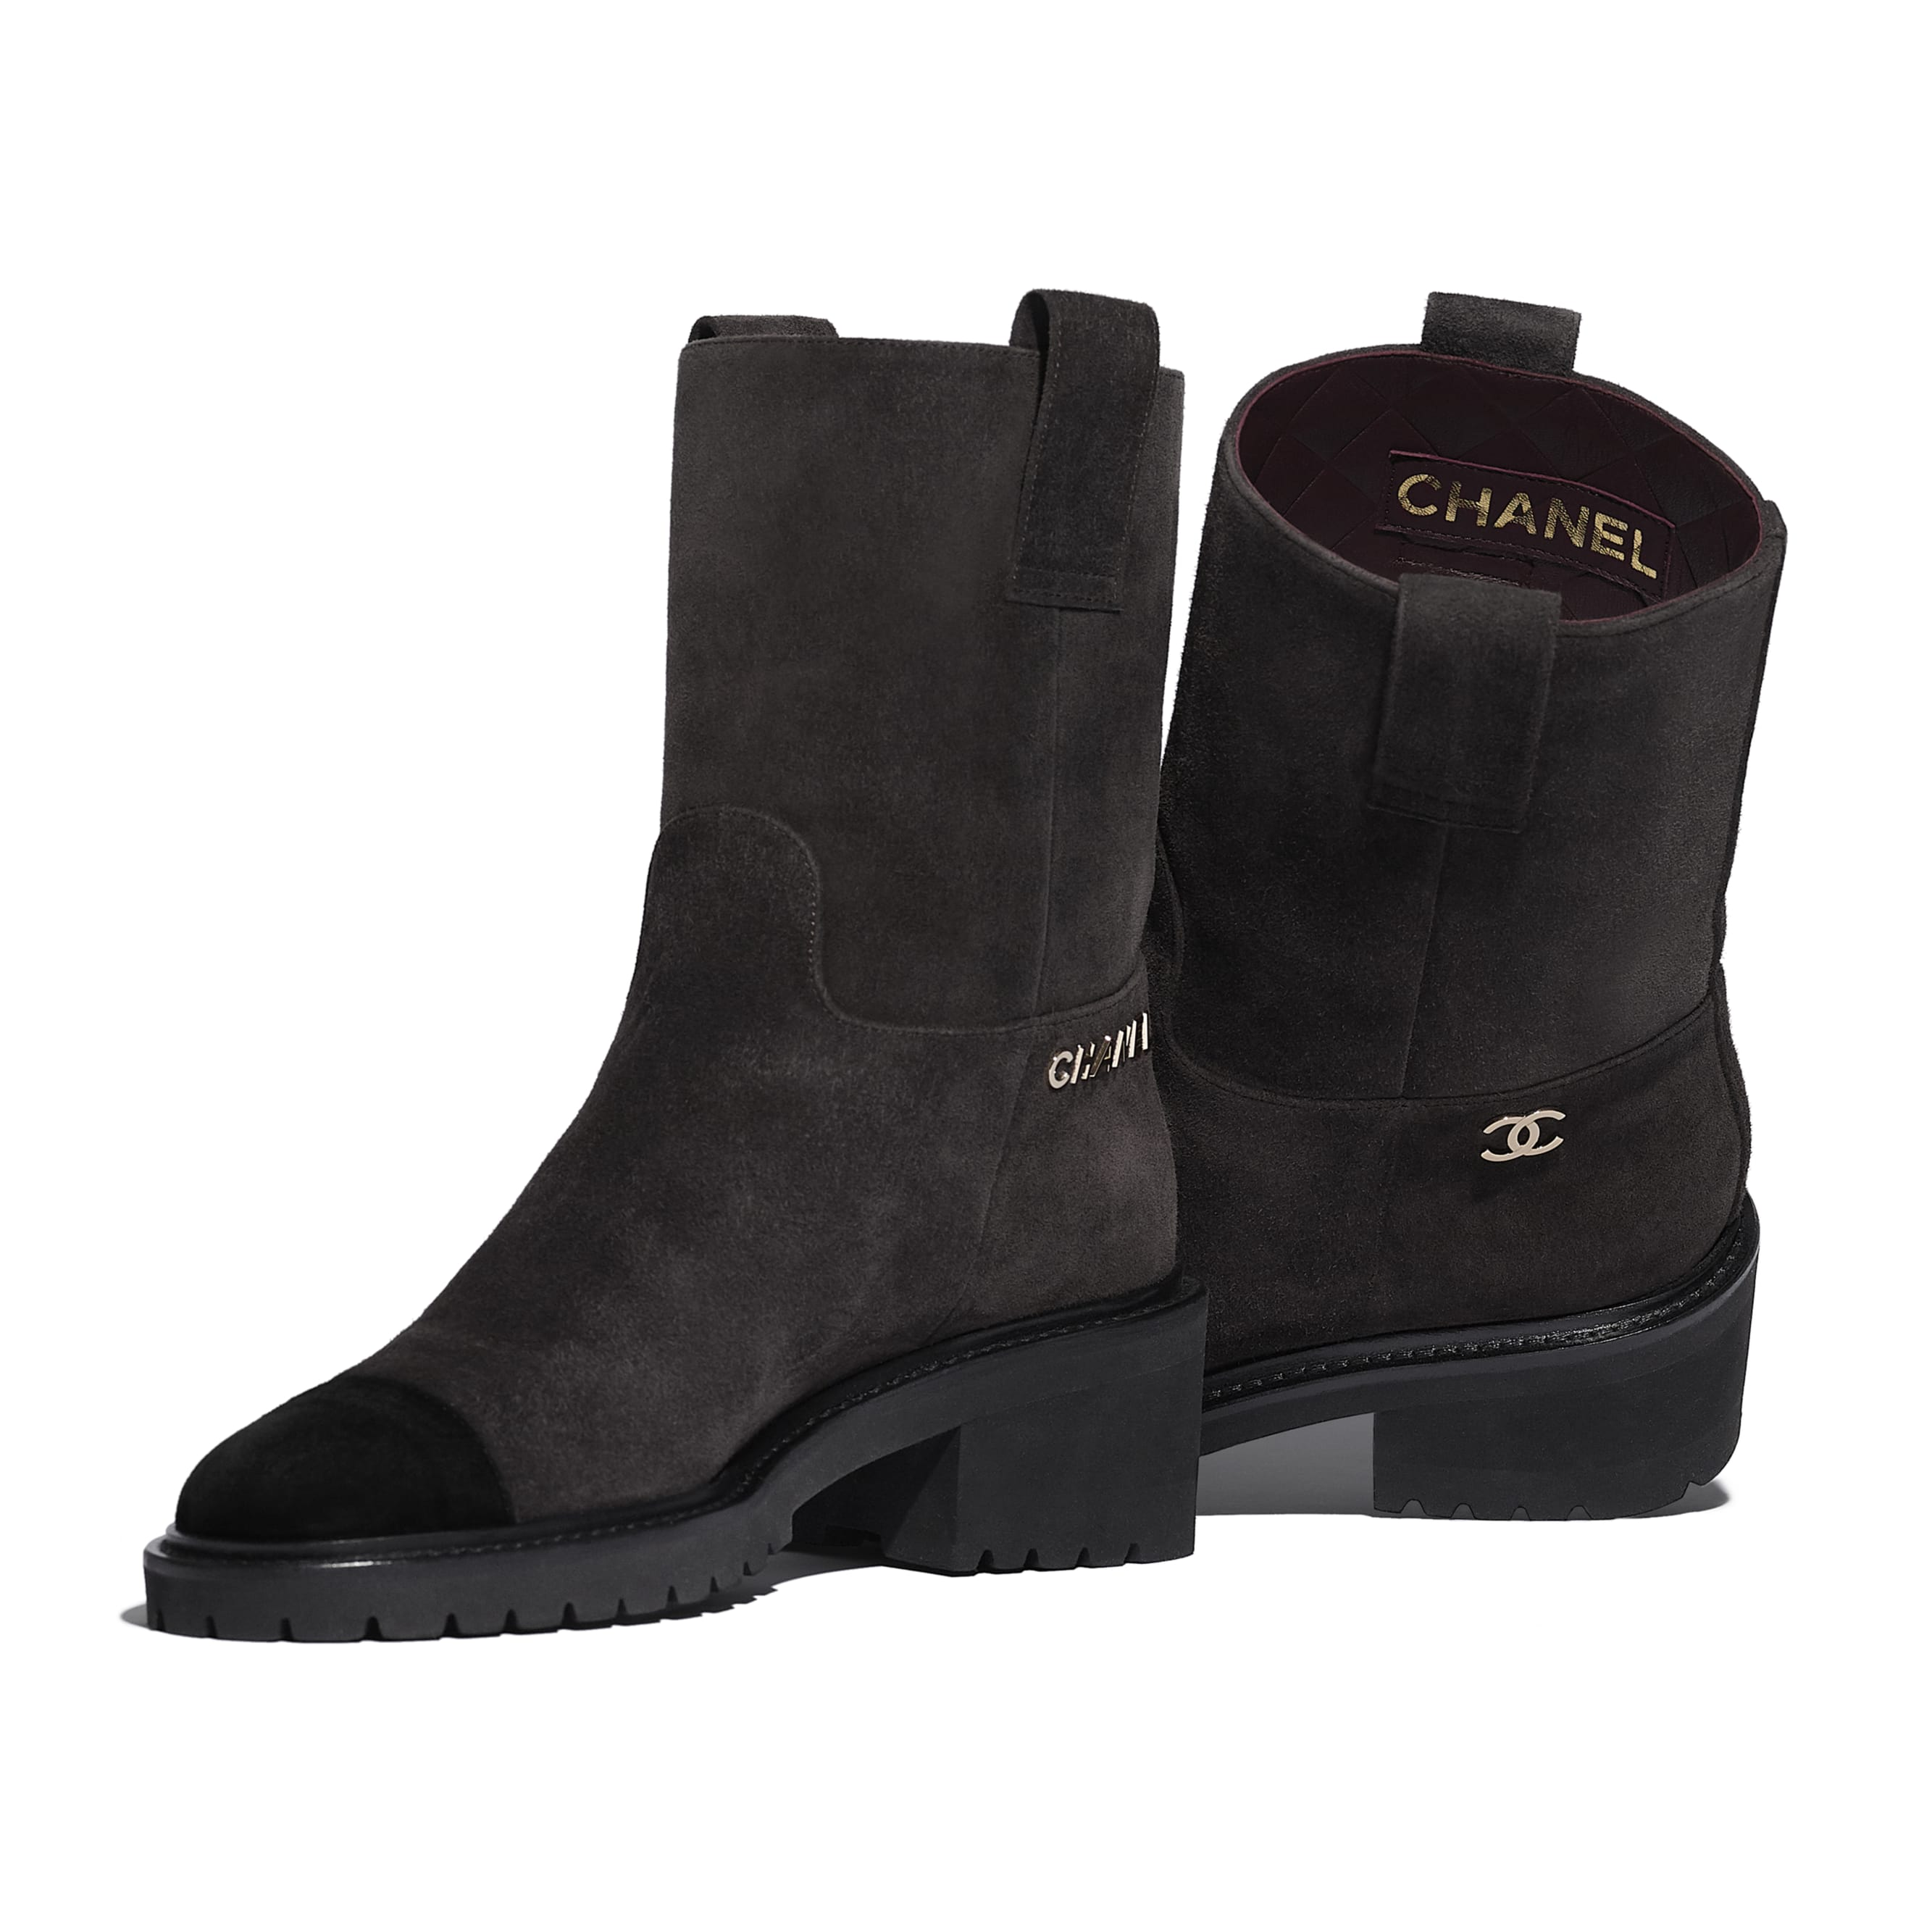 Ankle Boots - Brown & Black - Suede Calfskin - CHANEL - Extra view - see standard sized version